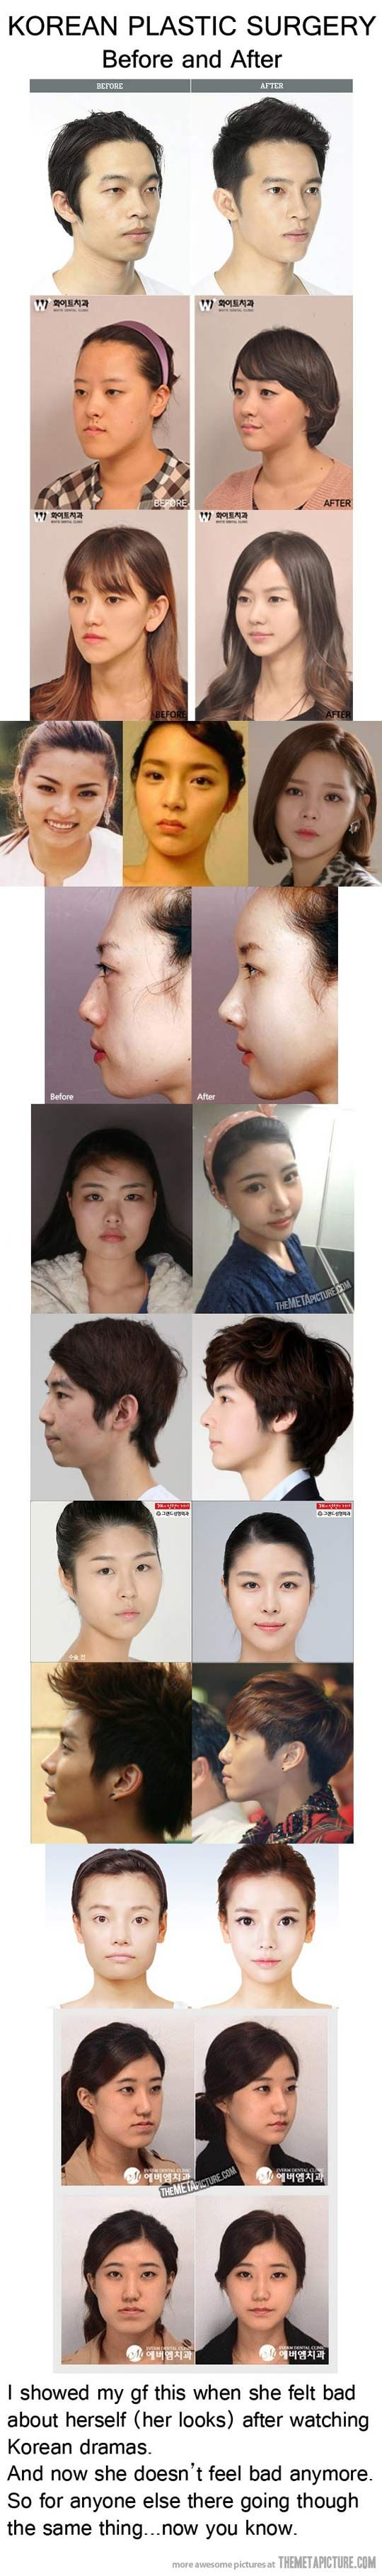 Extreme Korean plastic surgery… now i know where to go when i want my face done lol